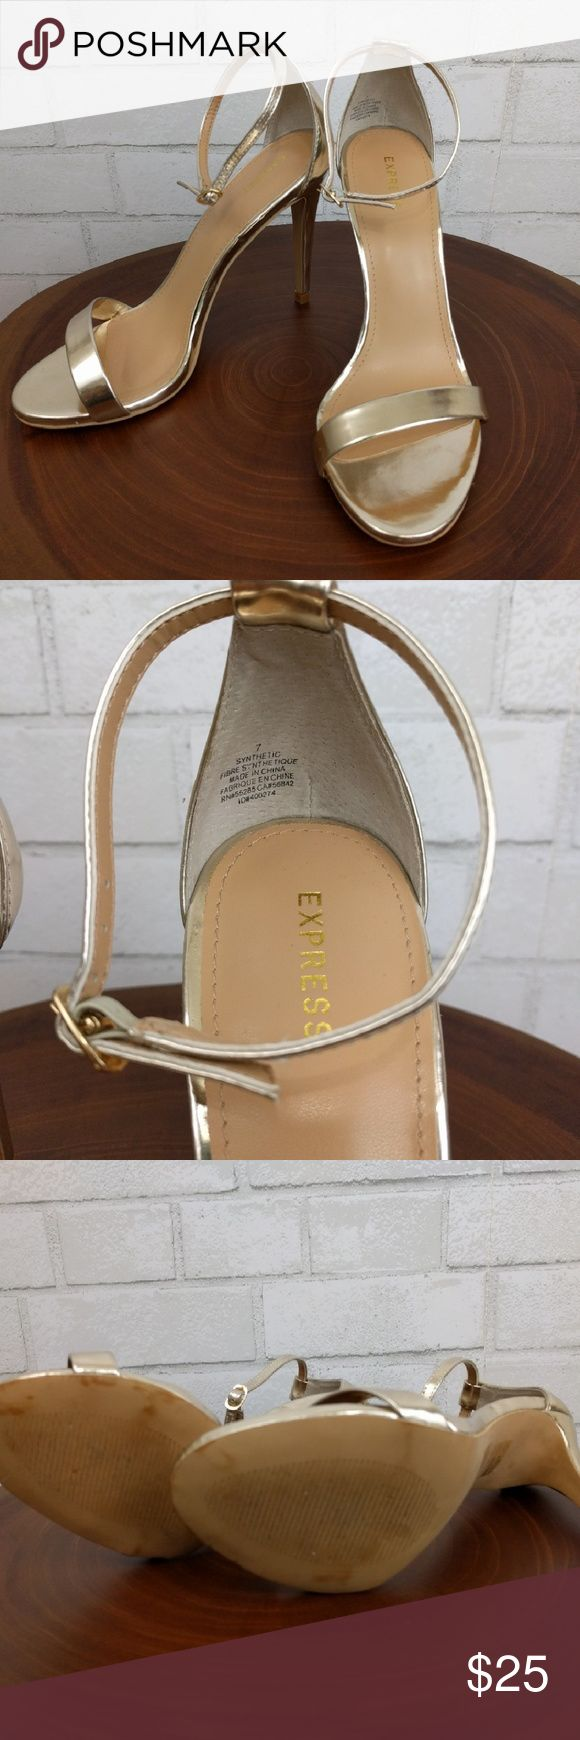 🎈ONE DAY SALE🎈 Express Gold Strap Heels Some wear shown in heel (see pic). Overall good condition. Pet and smoke free home. Express Shoes Heels